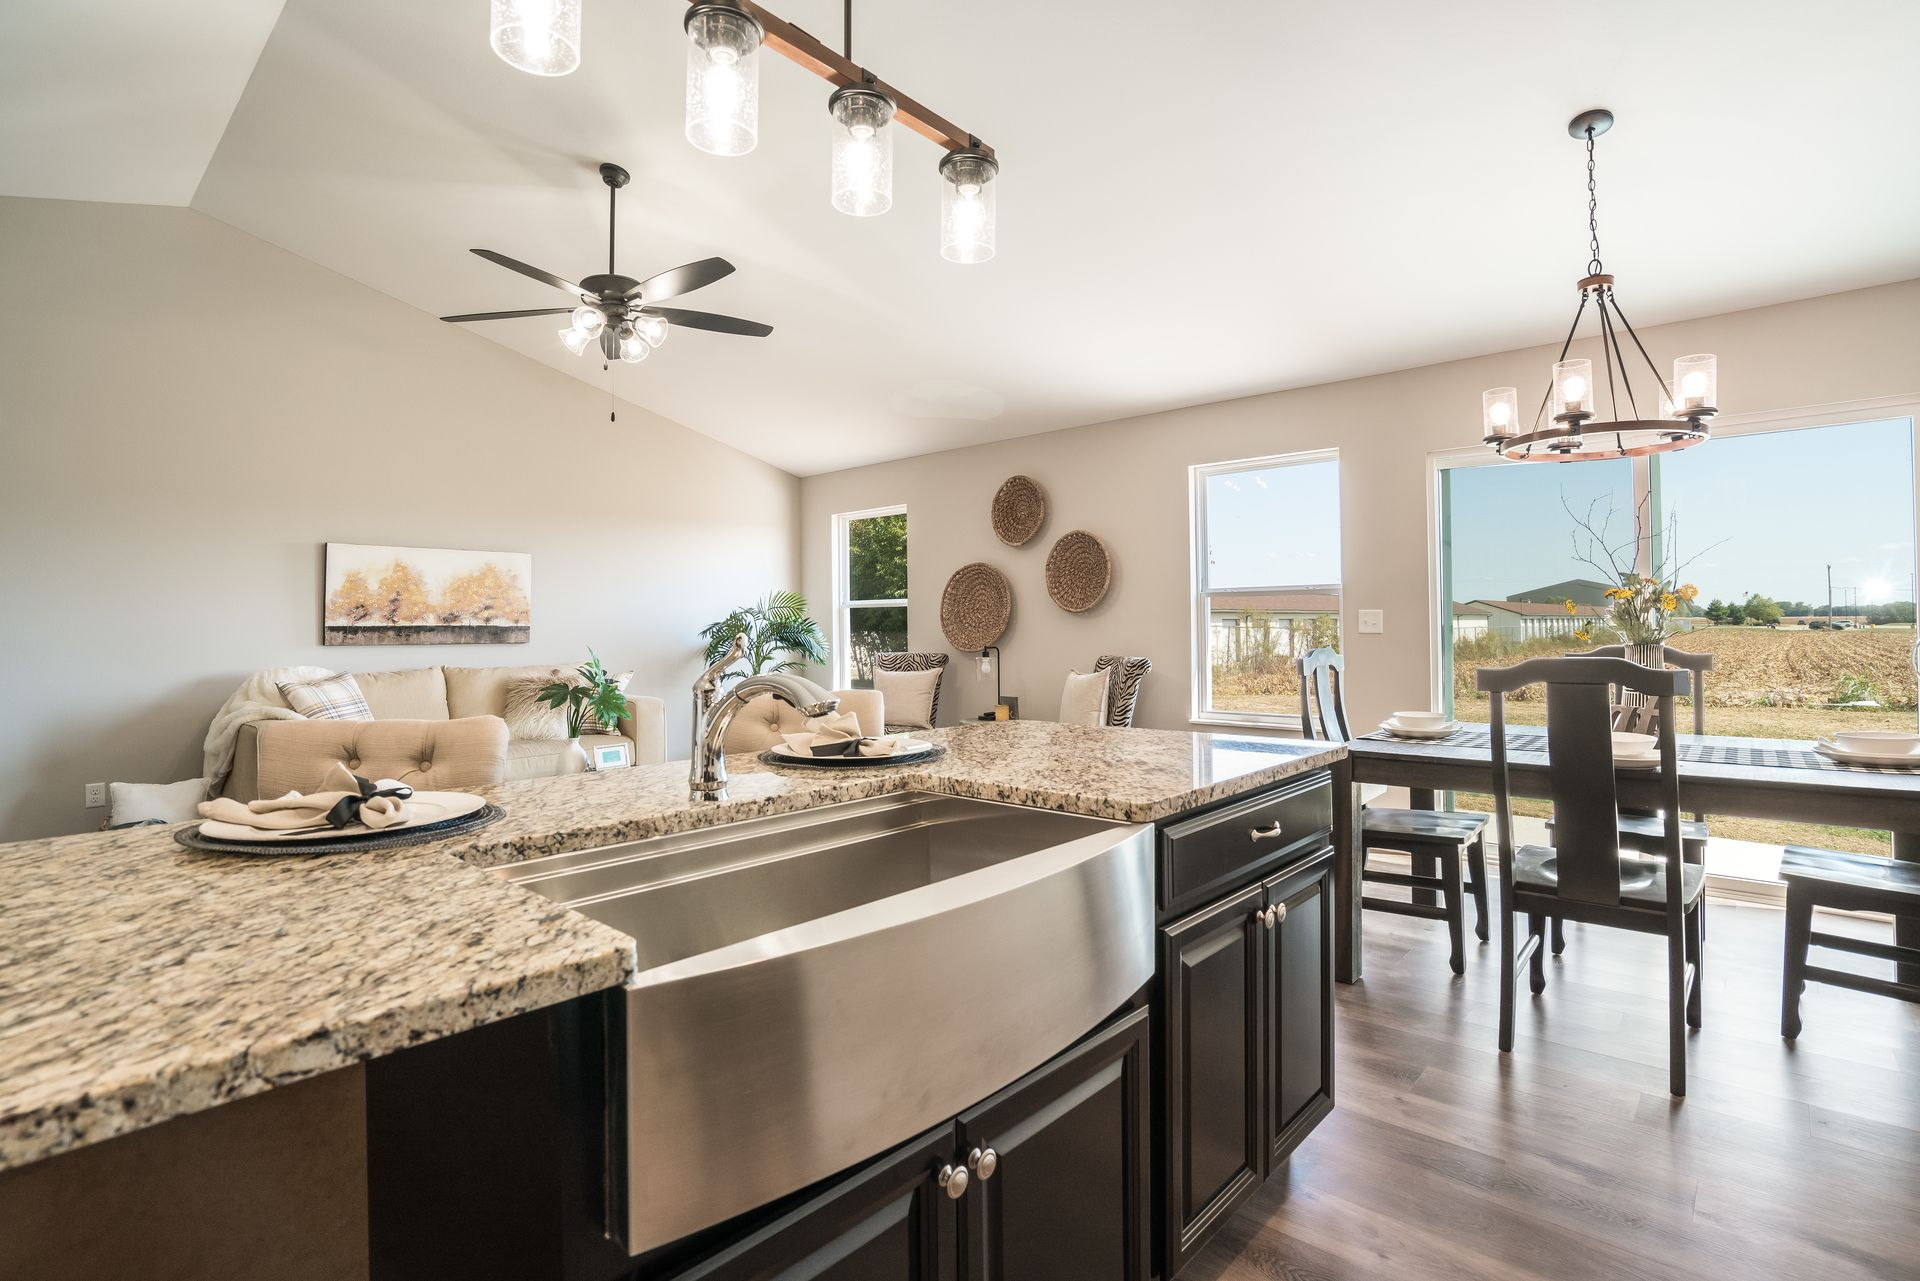 Kitchen featured in the Calais II By C.A. Jones, Inc.  in St. Louis, IL